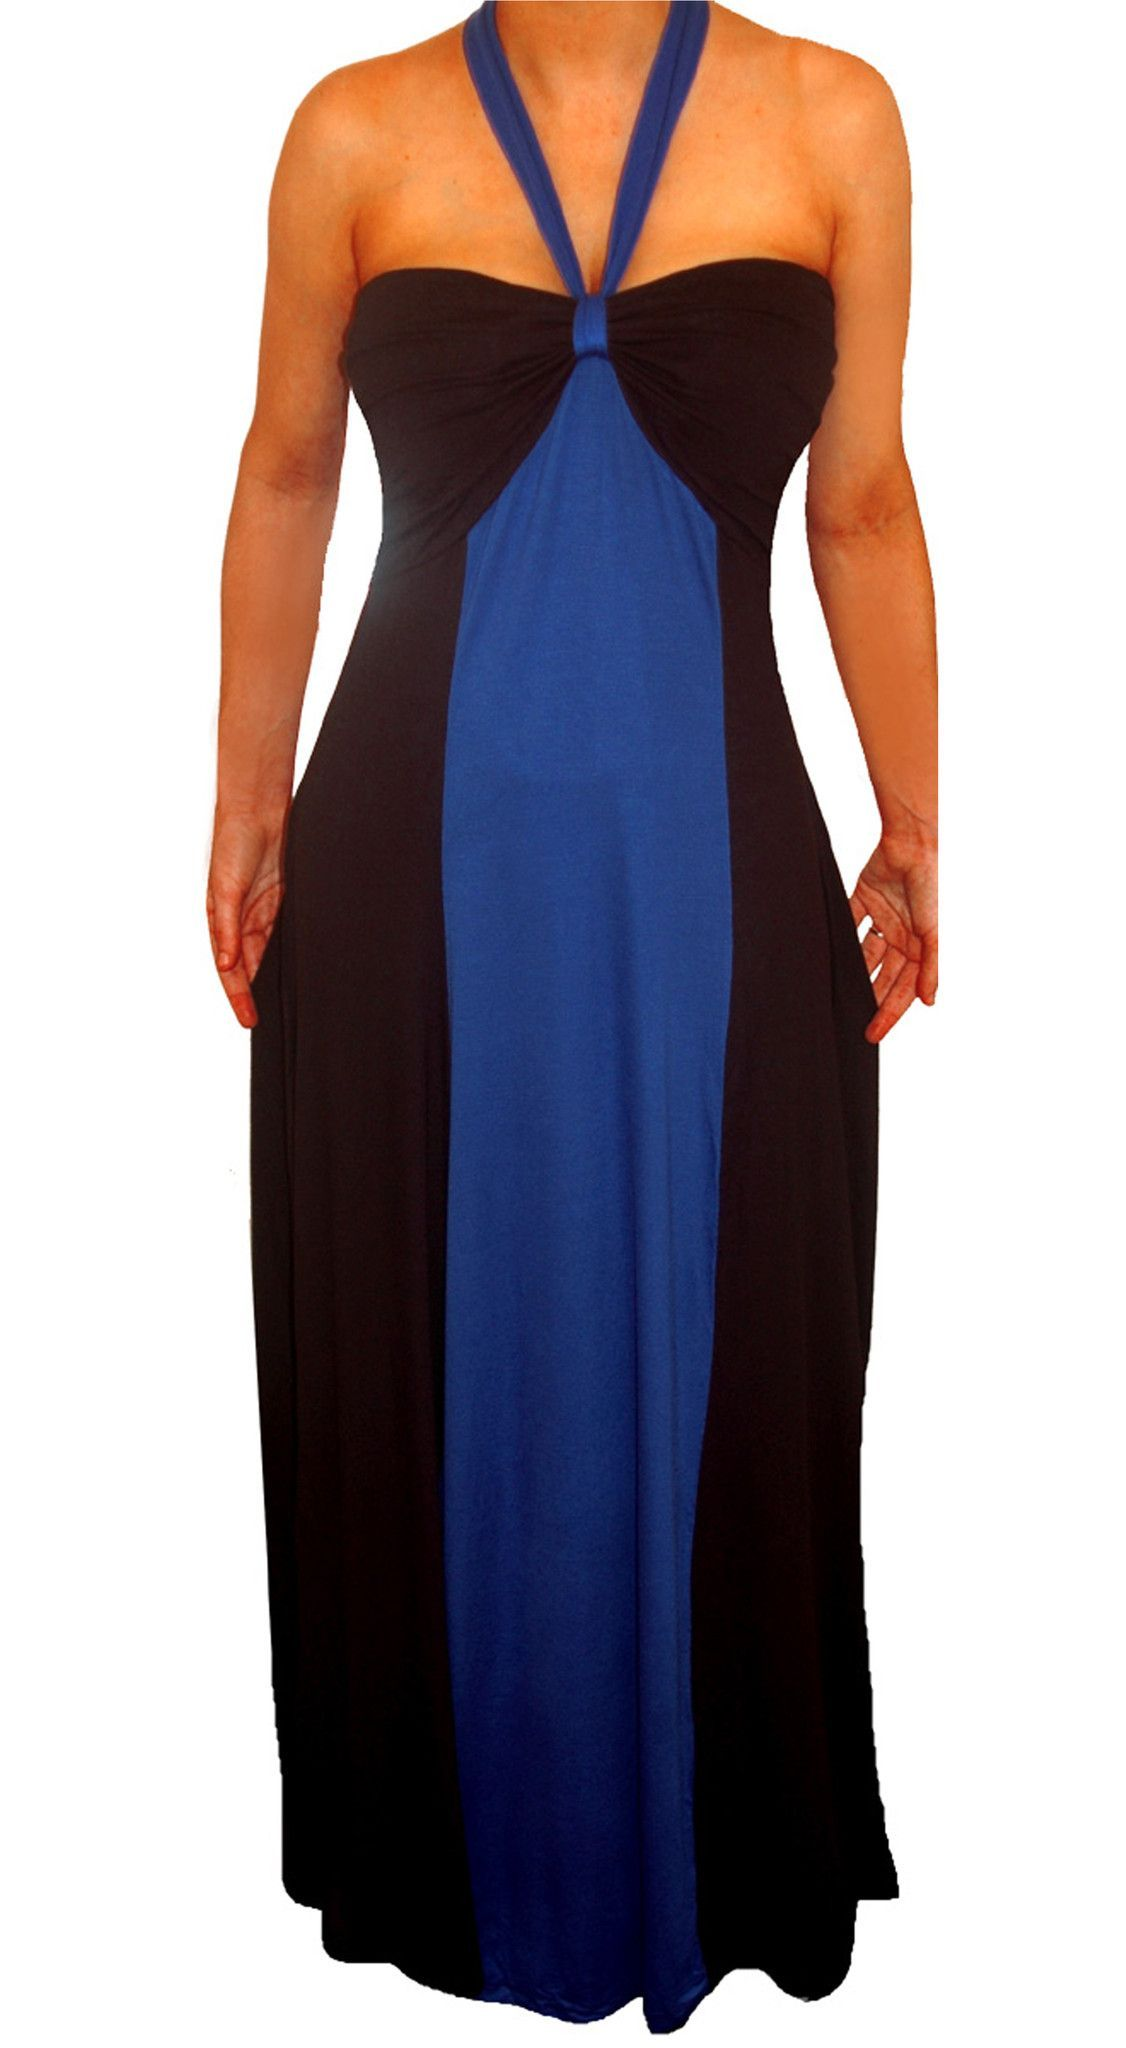 Funfash Plus Size Blue Black Color Block Halter Long Maxi Womens Dress